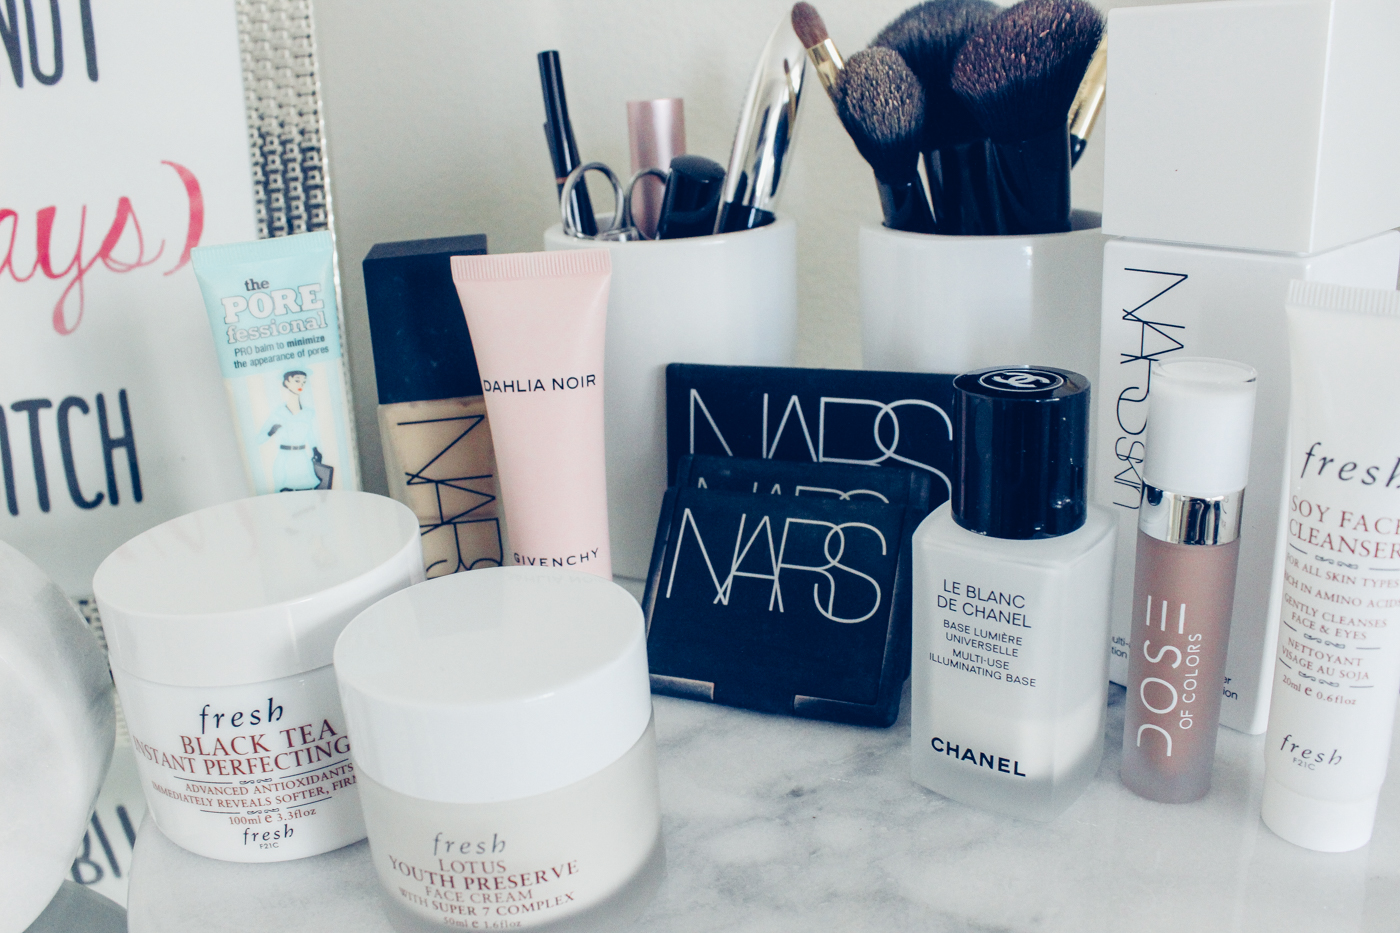 Blondie in the City | Marble Bathroom Styling | Makeup Products, NARS Makeup | Chanel Makeup | Black and White Bathroom Decor | White Marble Clock | White Marble Lazy Susan